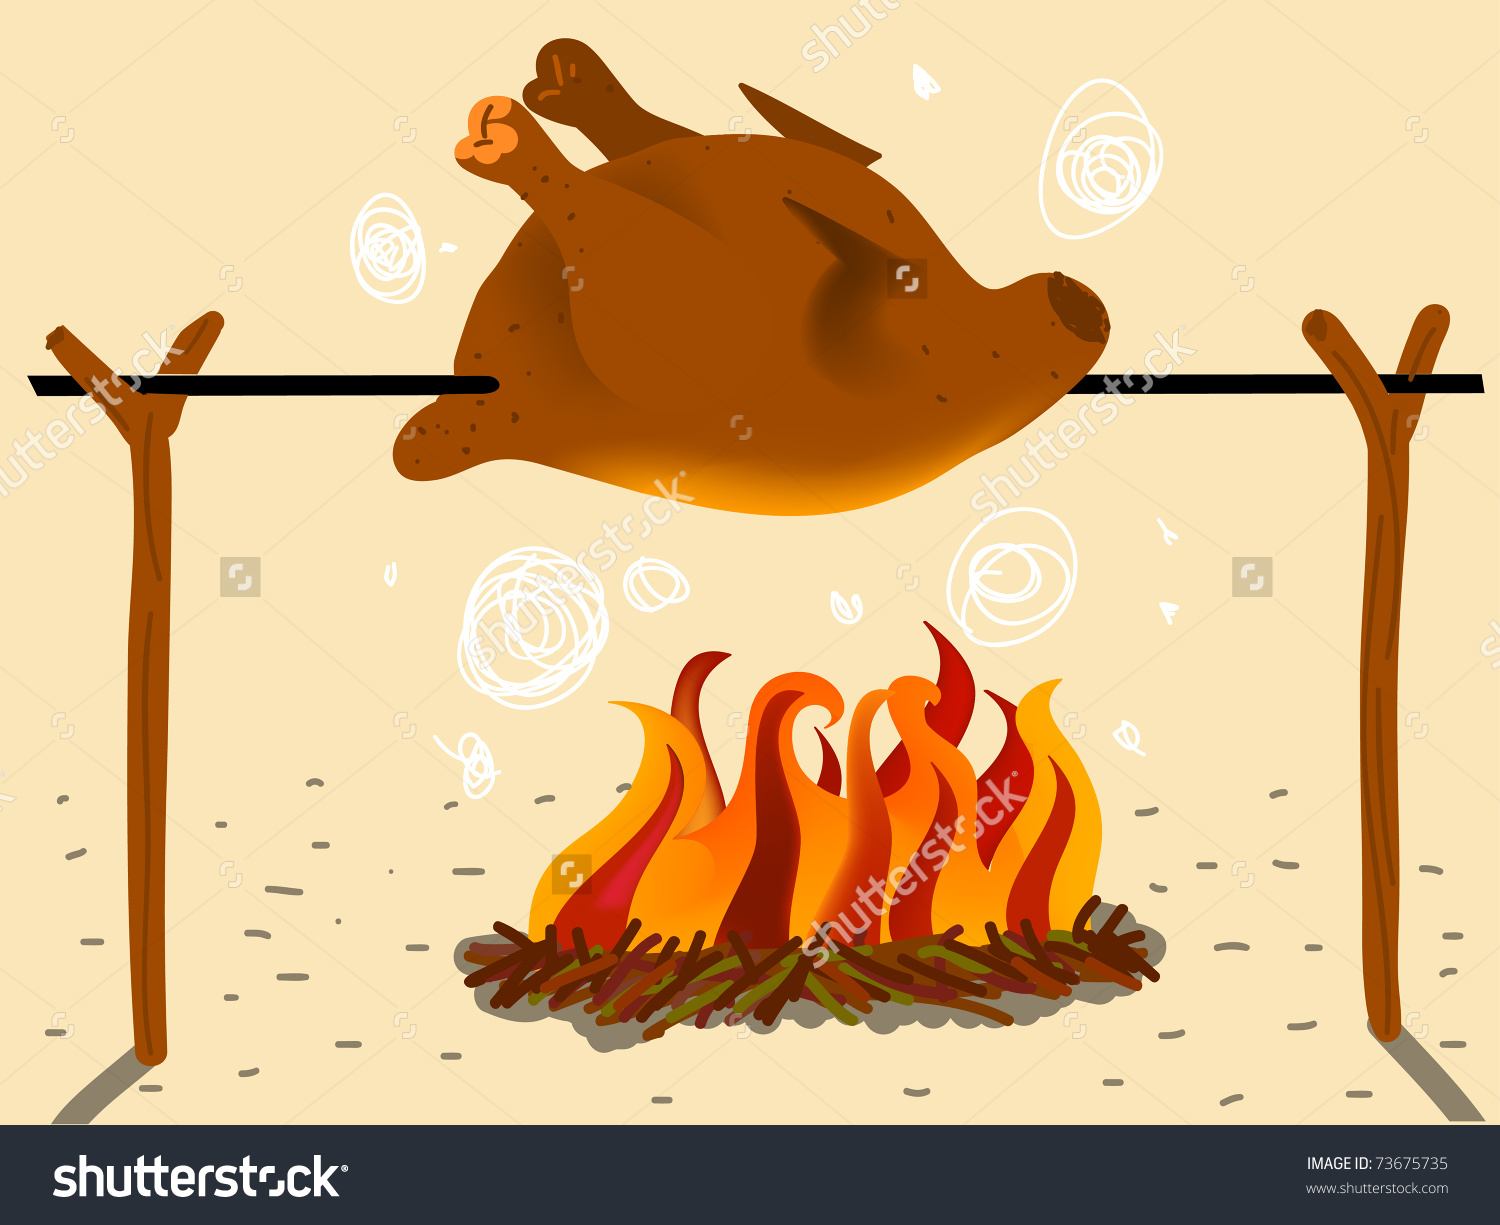 Roasted chicken clipart